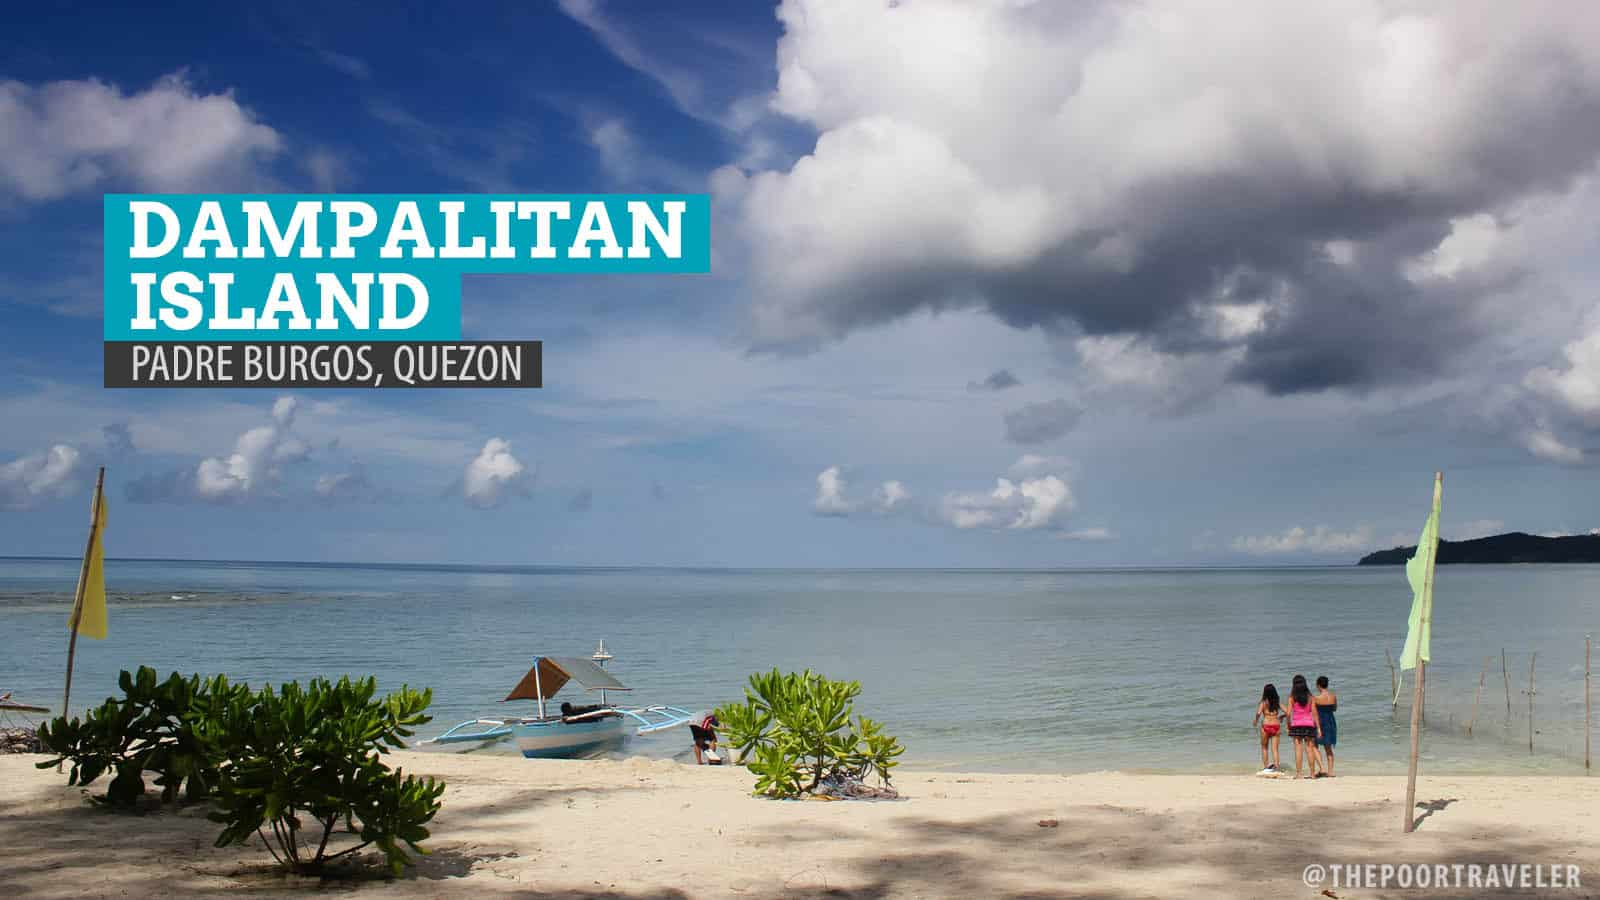 DAMPALITAN ISLAND: Overnight Camping in Padre Burgos, Quezon